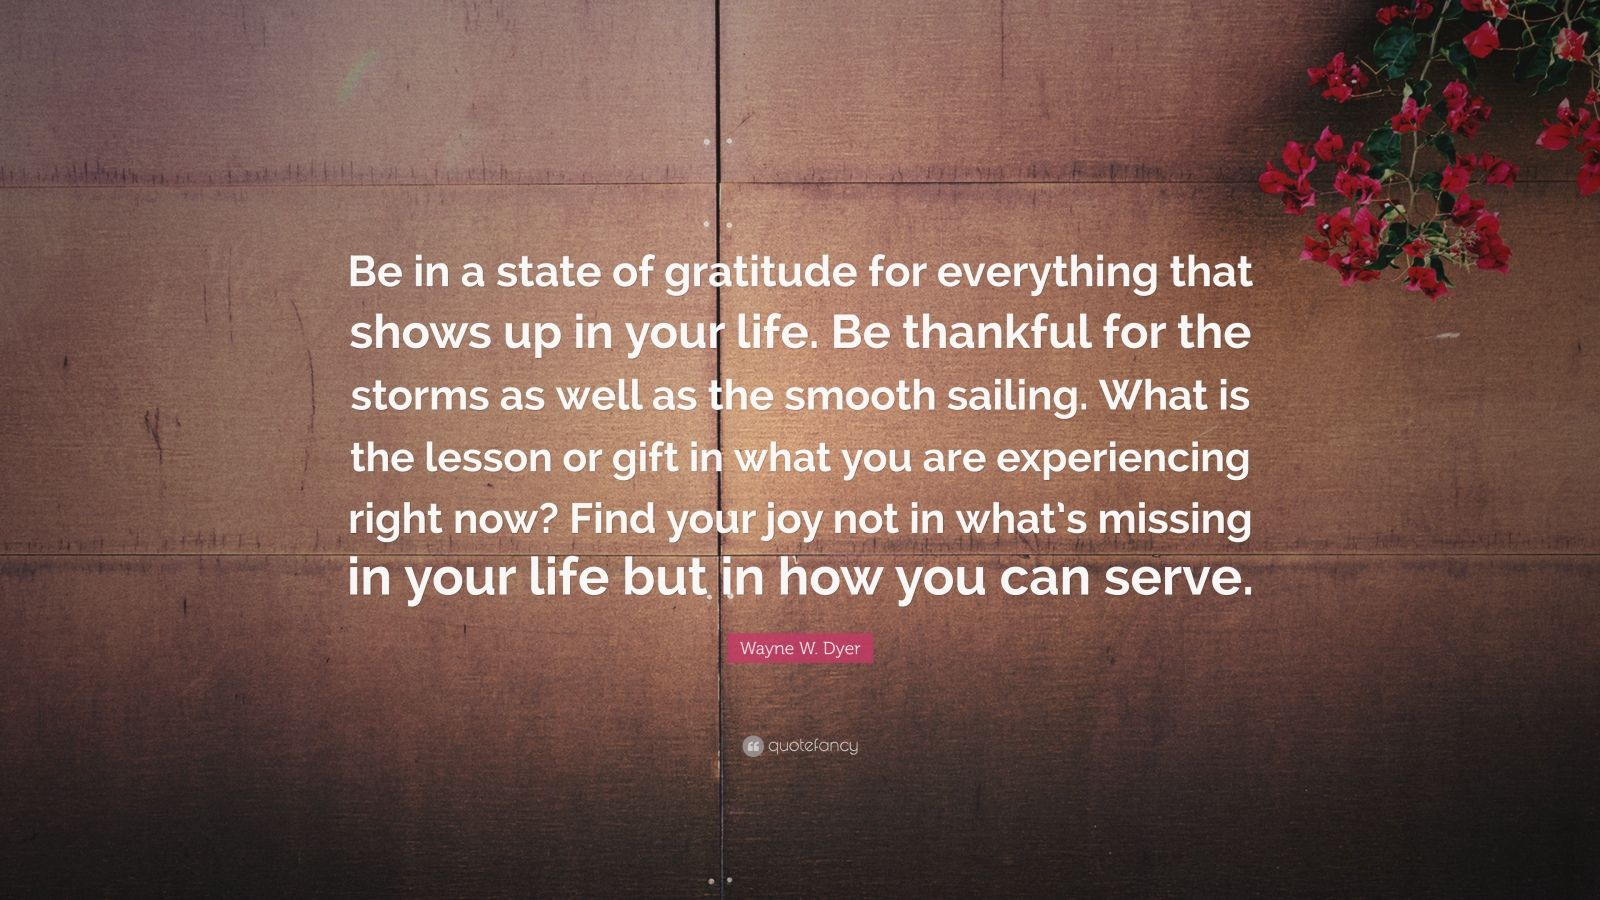 """Wayne W. Dyer Quote: """"Be in a state of gratitude for everything that shows up in your life. Be thankful for the storms as well as the smooth sailing. What is the lesson or gift in what you are experiencing right now? Find your joy not in what's missing in your life but in how you can serve."""""""